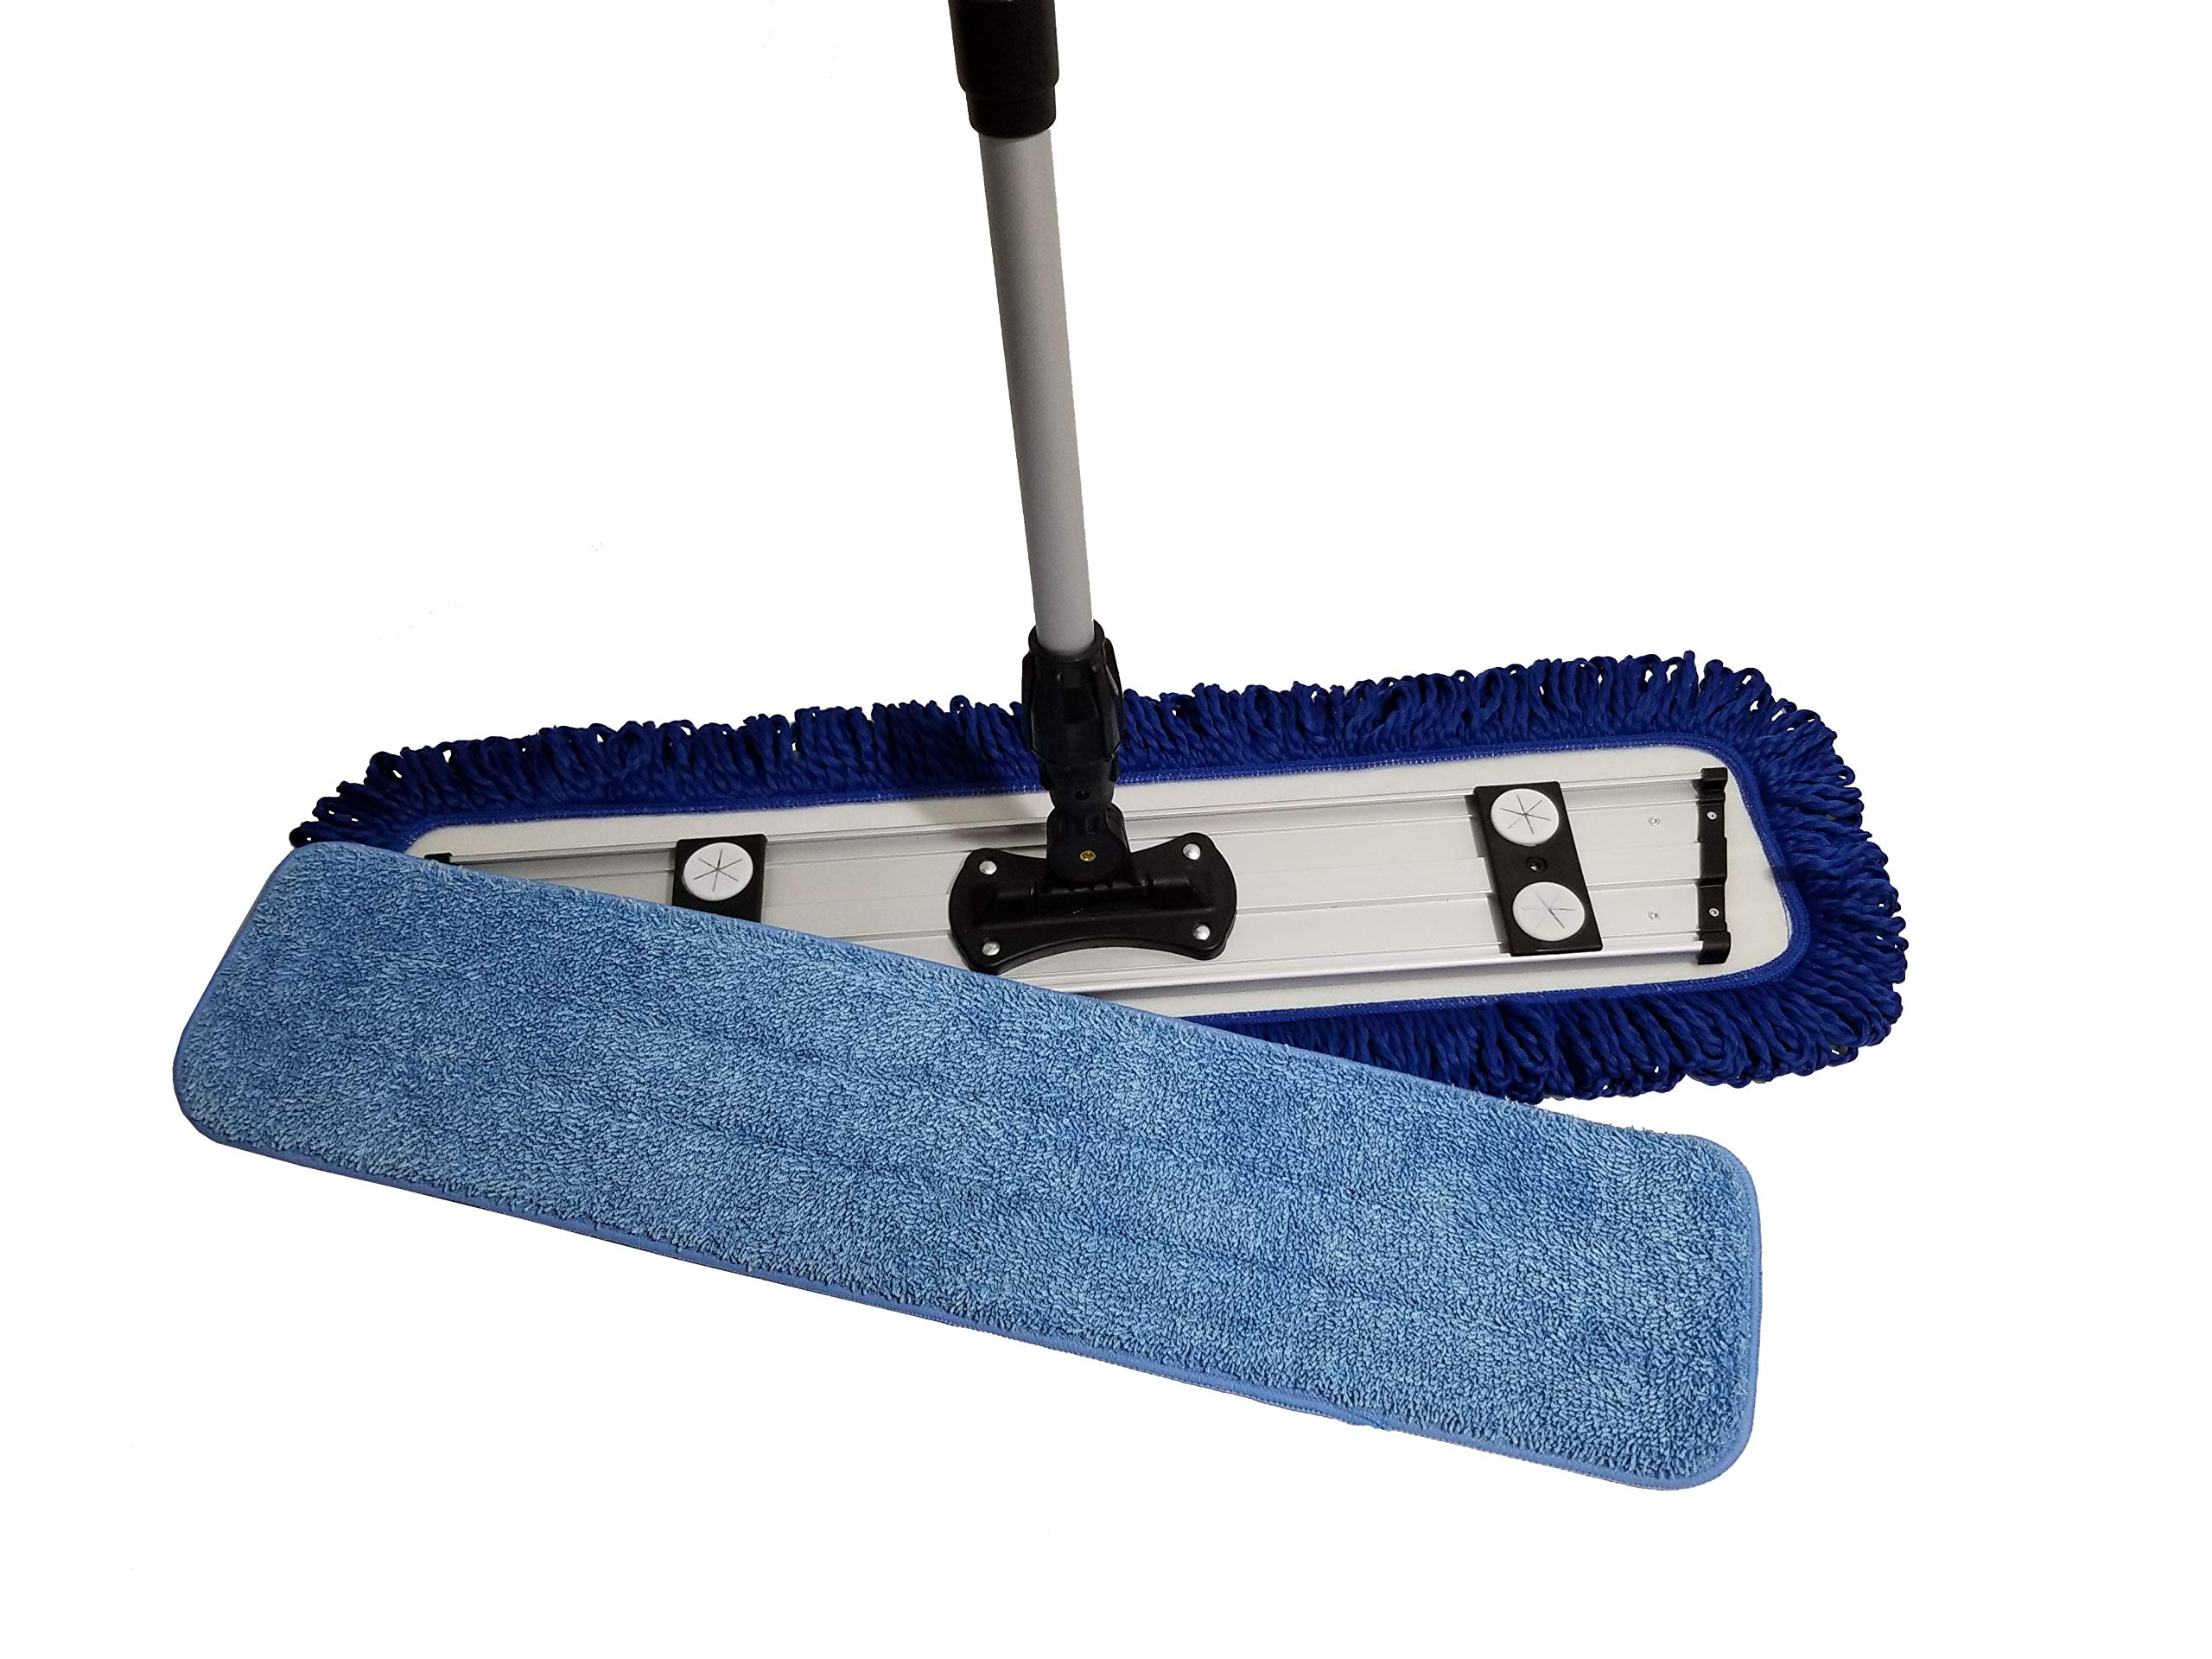 Microfiber Mop Professional Grade 24'' Kit by IdaSmart   Robust Aluminum Handle & Frame   2 Premium Mop Pads   Hardwood, Laminate, Tile, Vinyl, Stone and Concrete Floor Care and Cleaning by IdaSmart